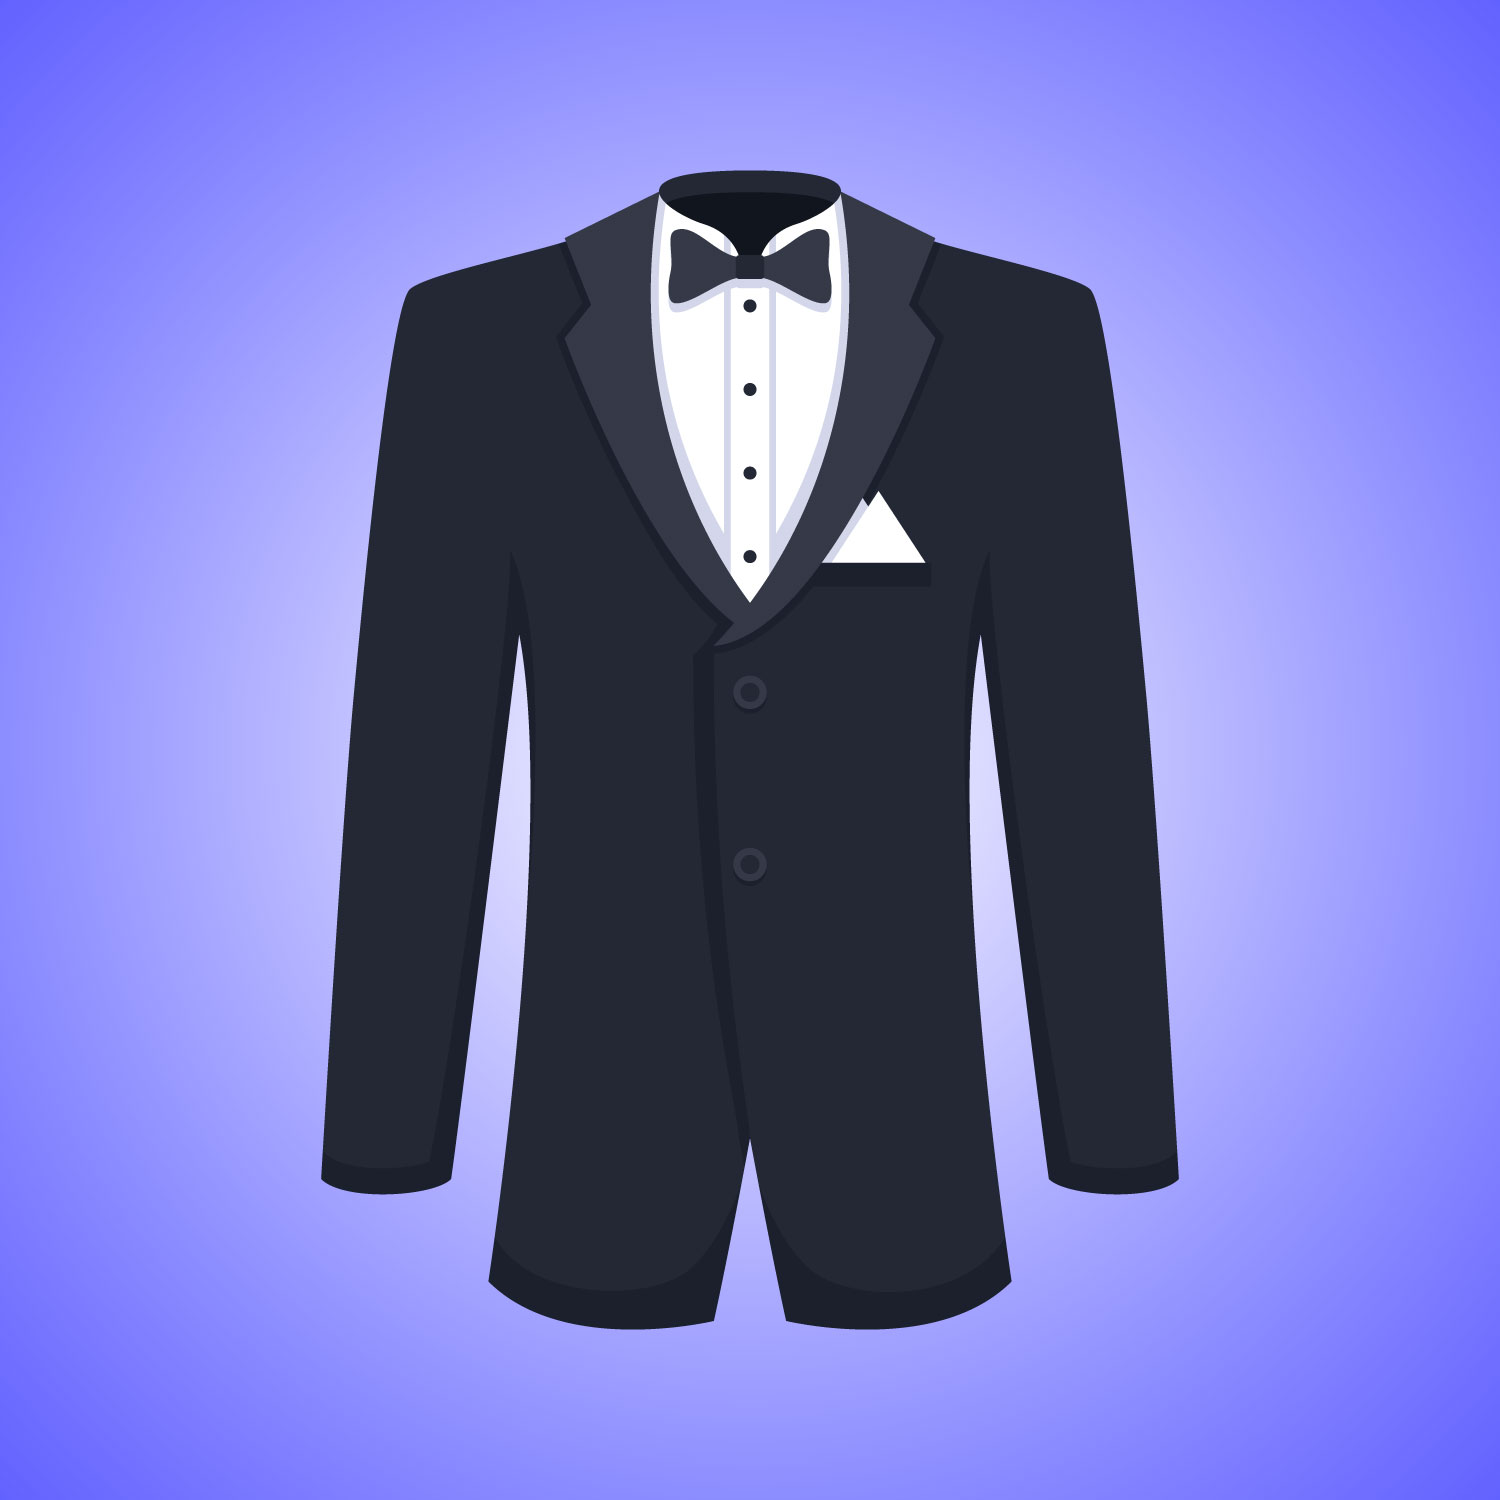 Outstanding Tuxedo Vectors Download Free Vectors